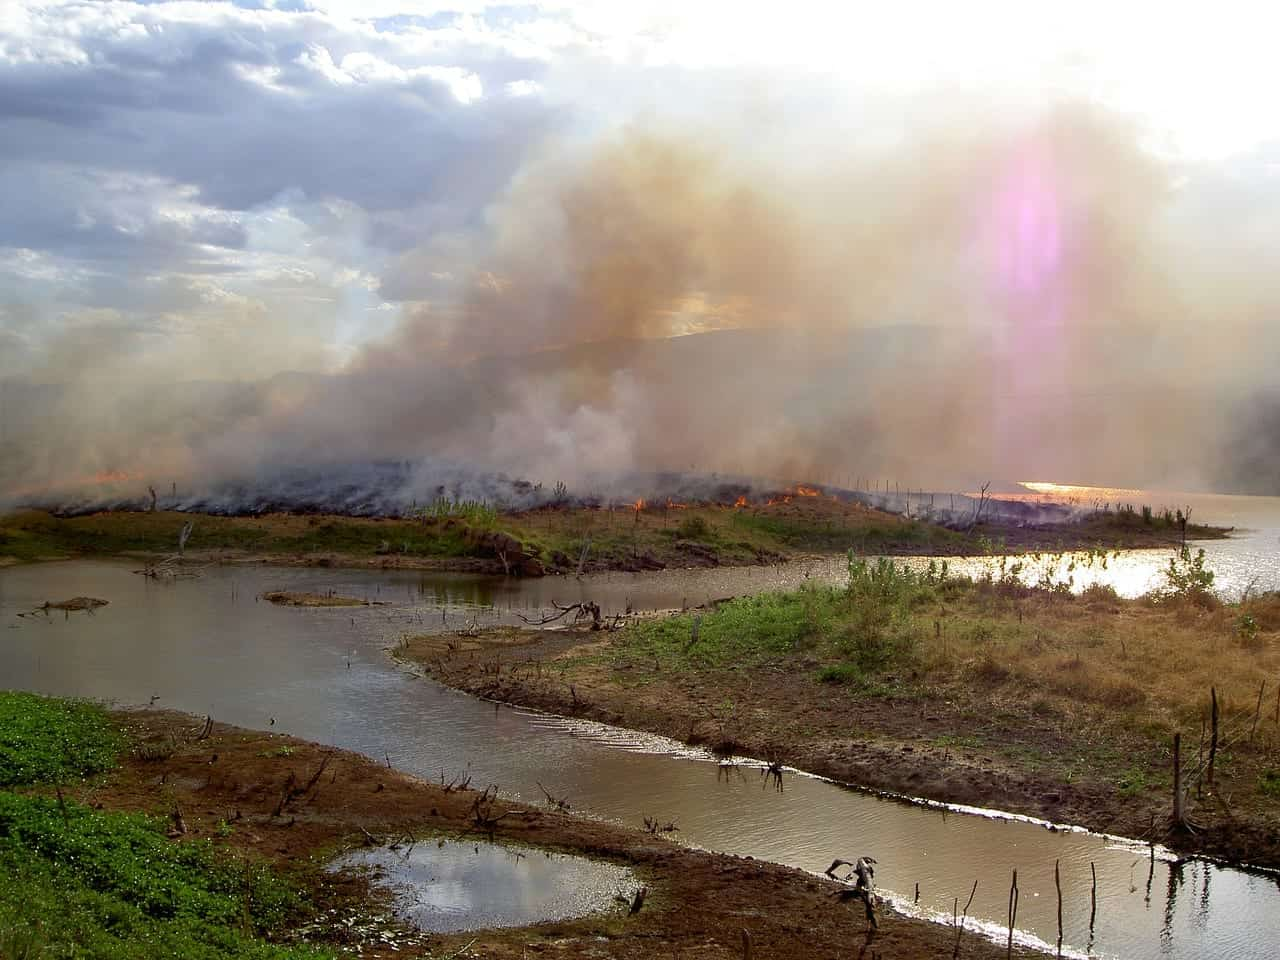 Smoke rises above a burning Amazon being cleared for agriculture.